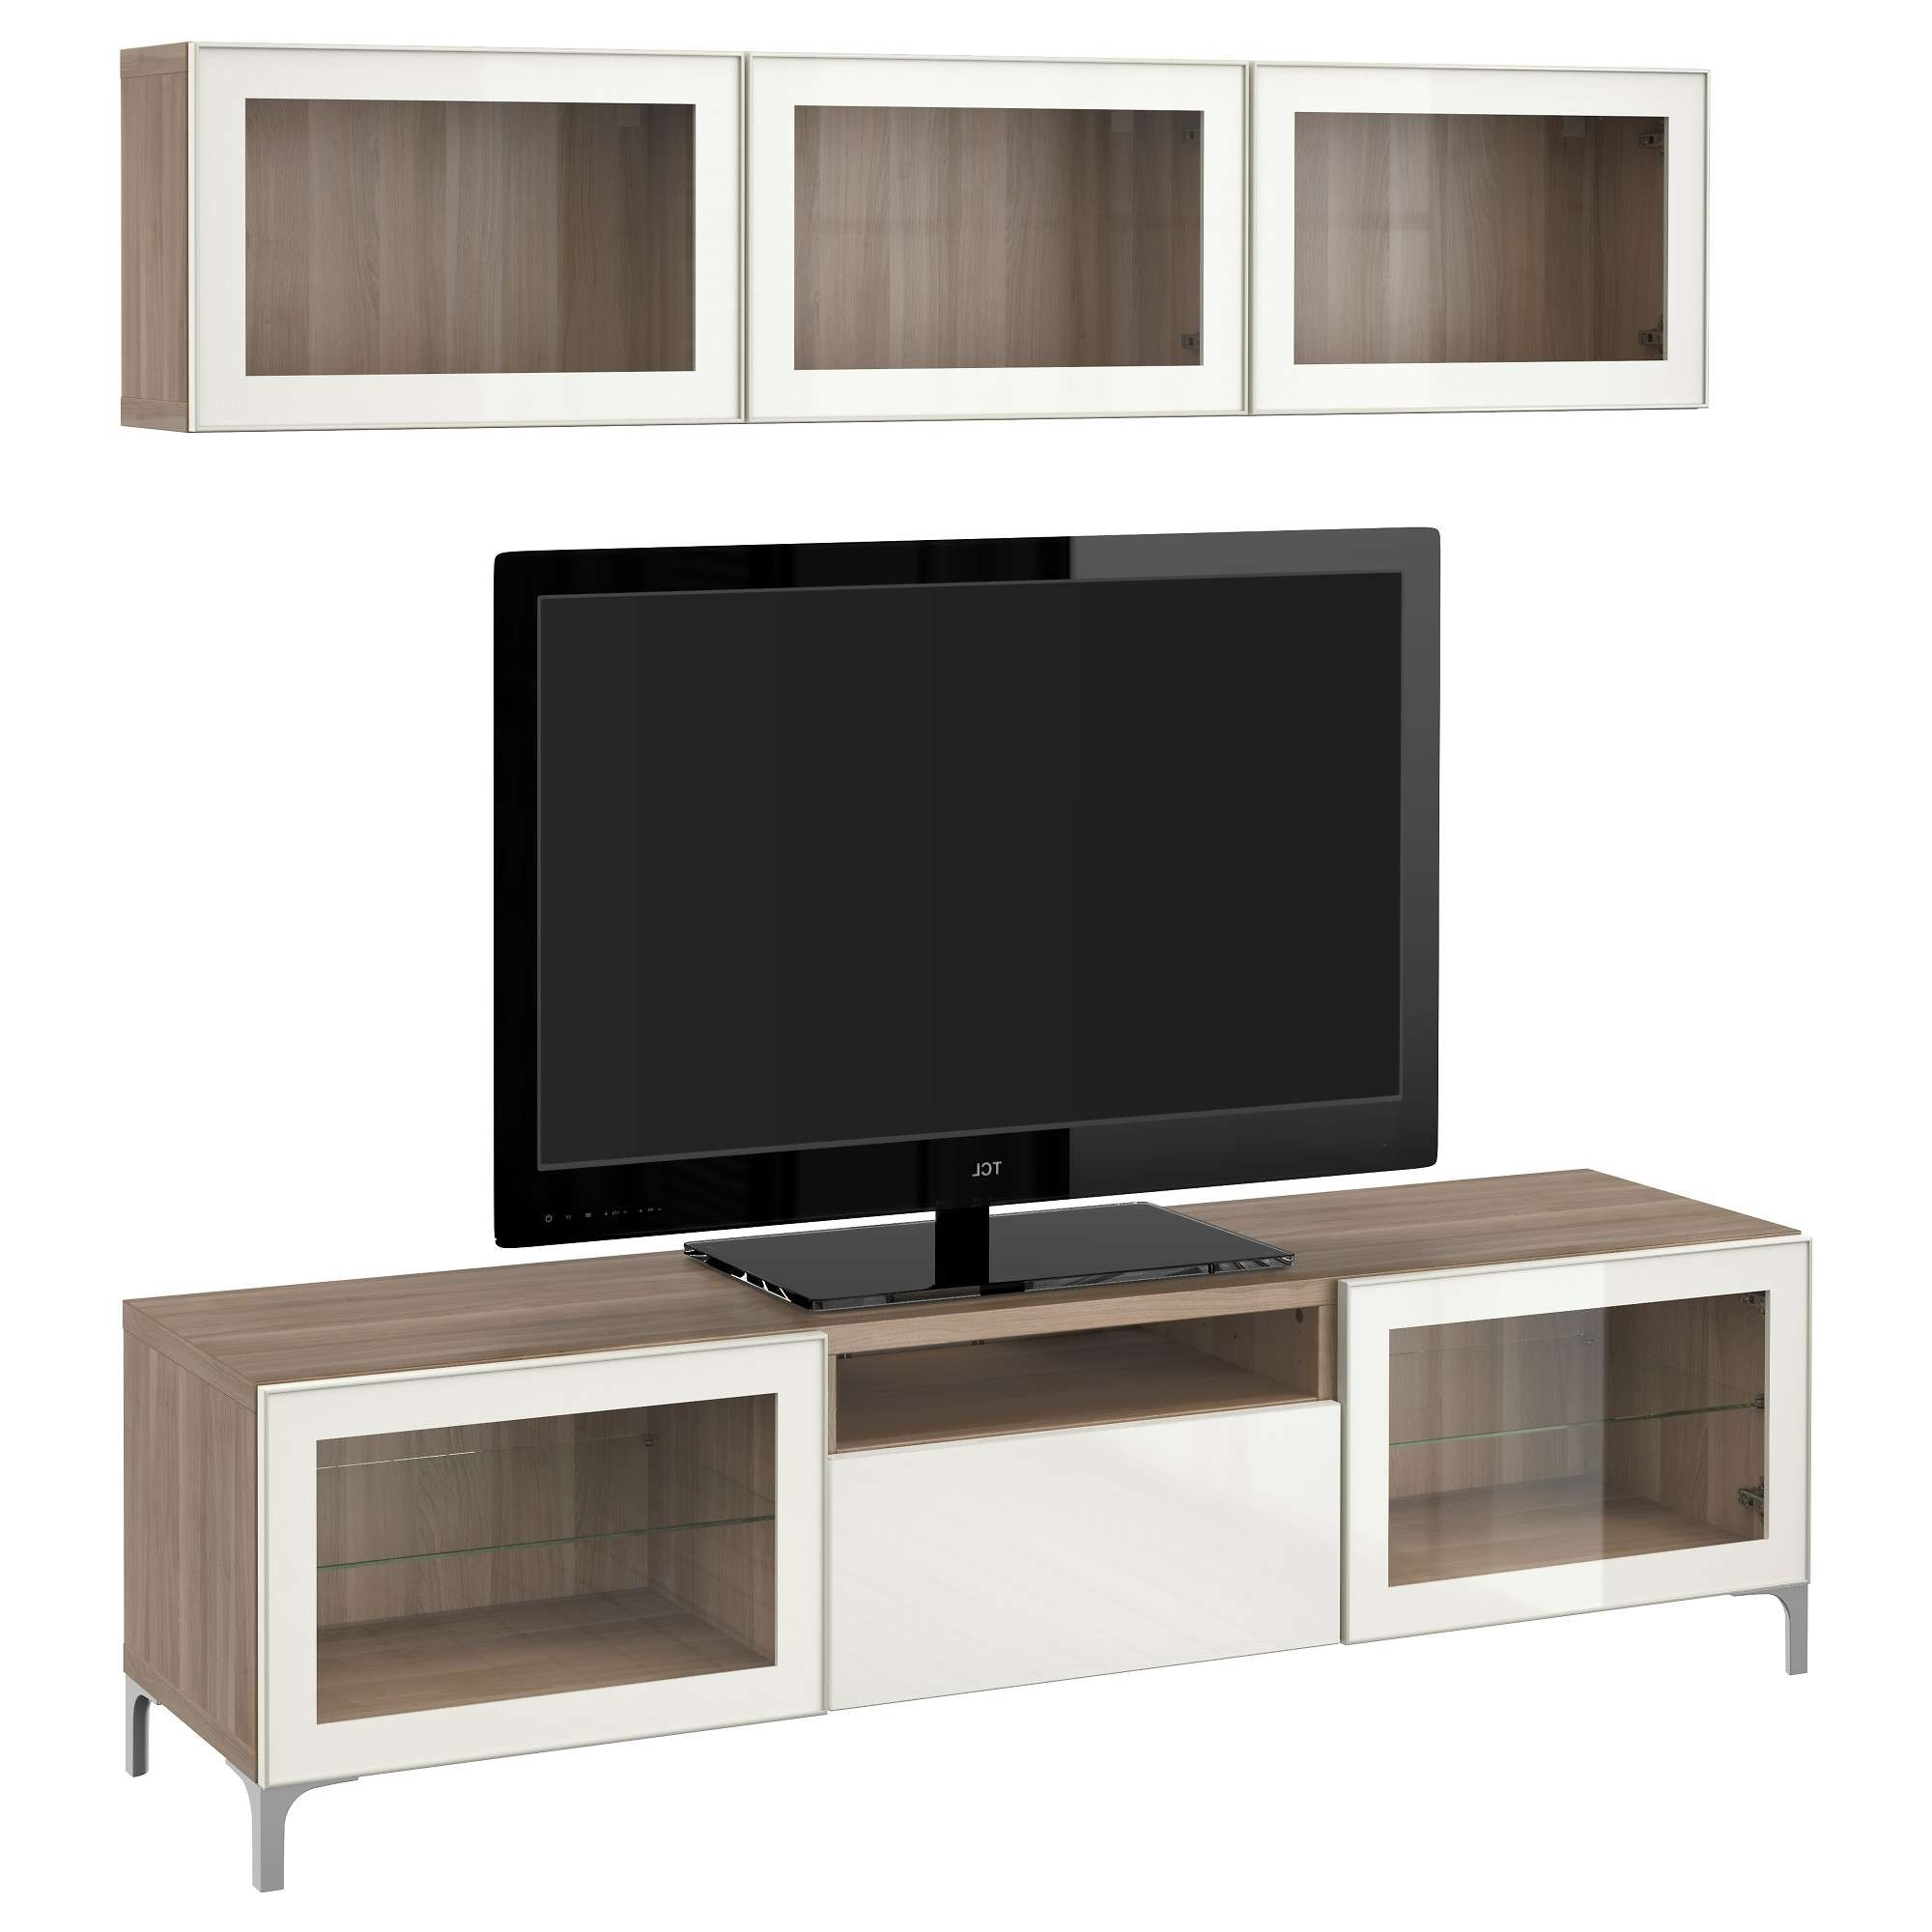 Bestå Tv Storage Combination/glass Doors – Walnut Effect Light Inside Walnut Tv Cabinets With Doors (View 1 of 20)